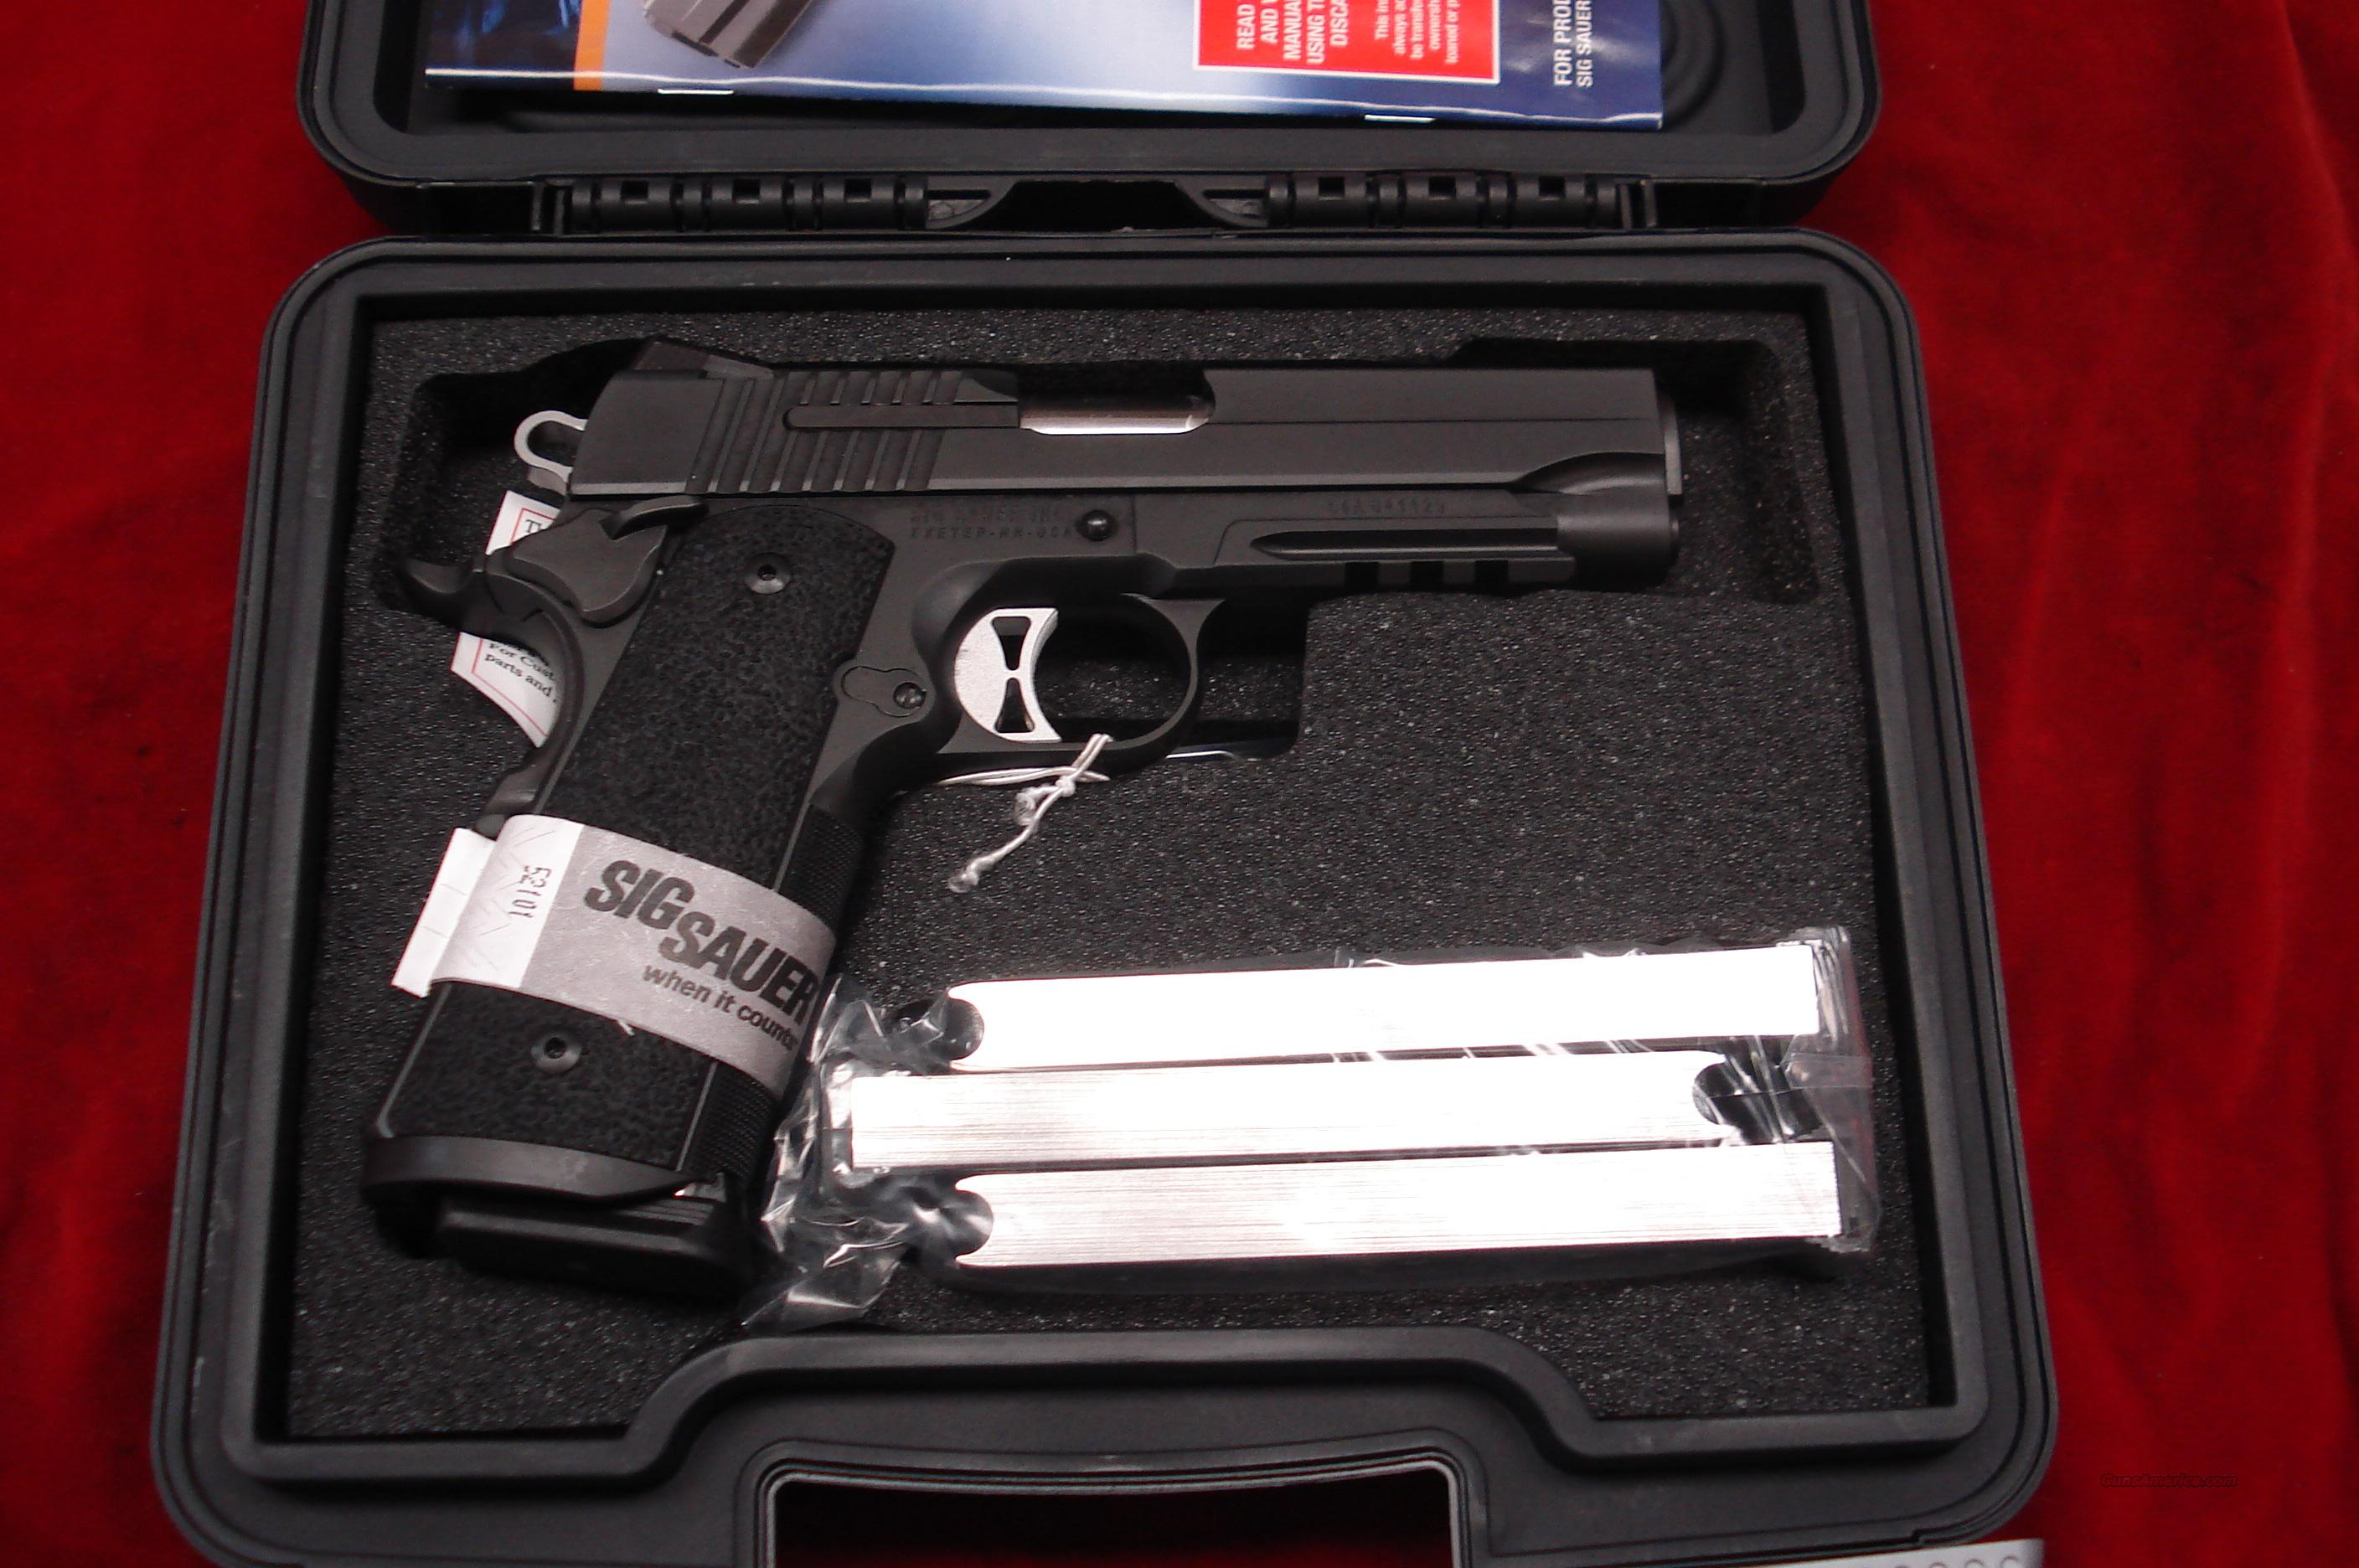 SIG SAUER 1911 CARRY  TACOPS WITH TAC RAIL NIGHT SIGHTS AND 4 MAGAZINES NEW   Guns > Pistols > Sig - Sauer/Sigarms Pistols > 1911